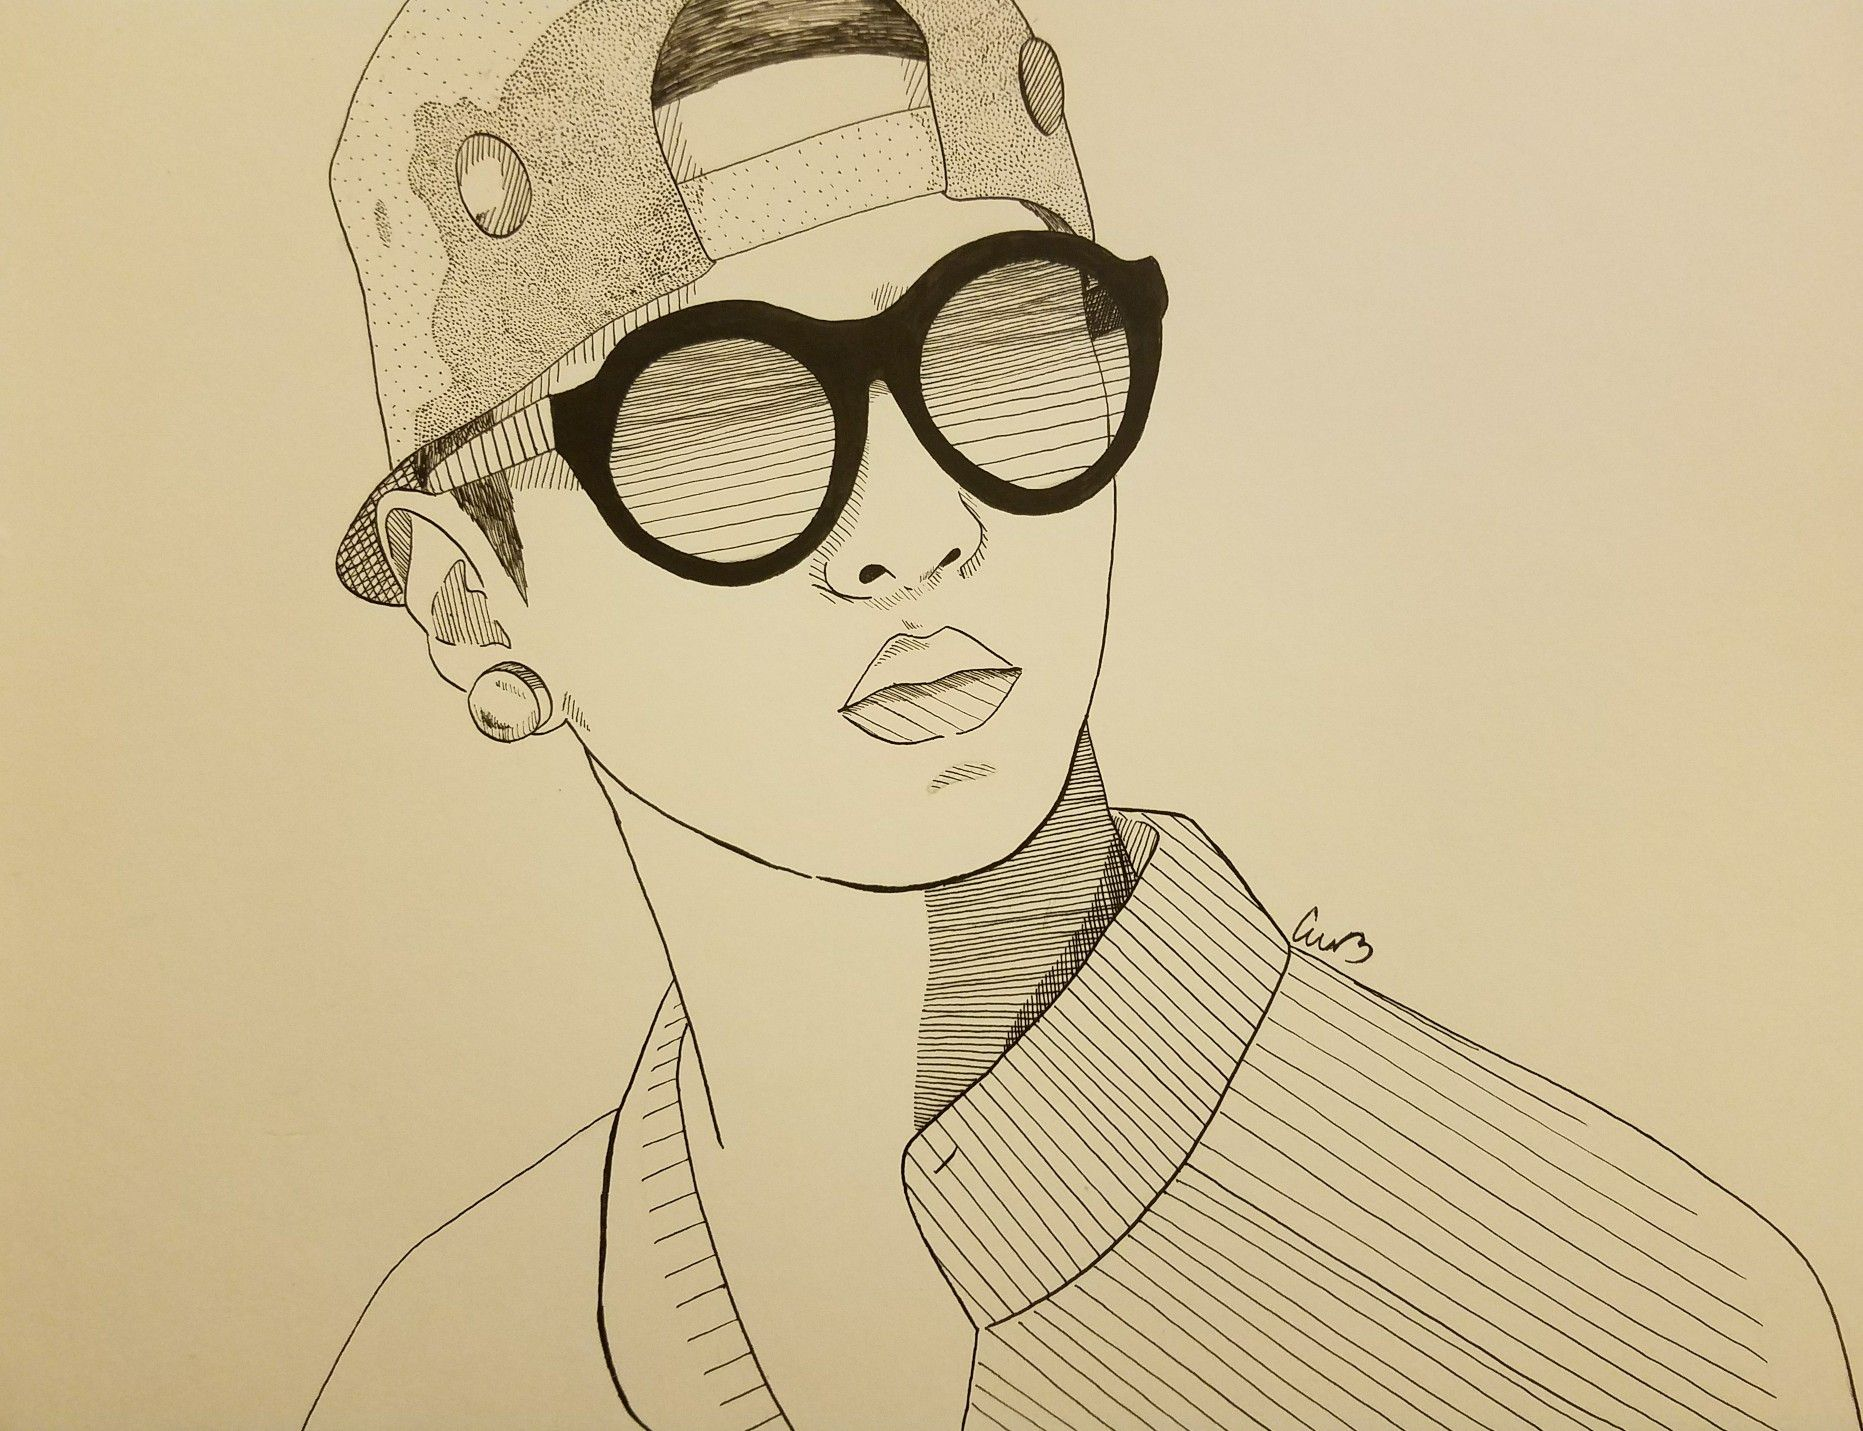 Line Art Portrait : Hurricane fan fanart kpop kpopfanart kpopfan illustration